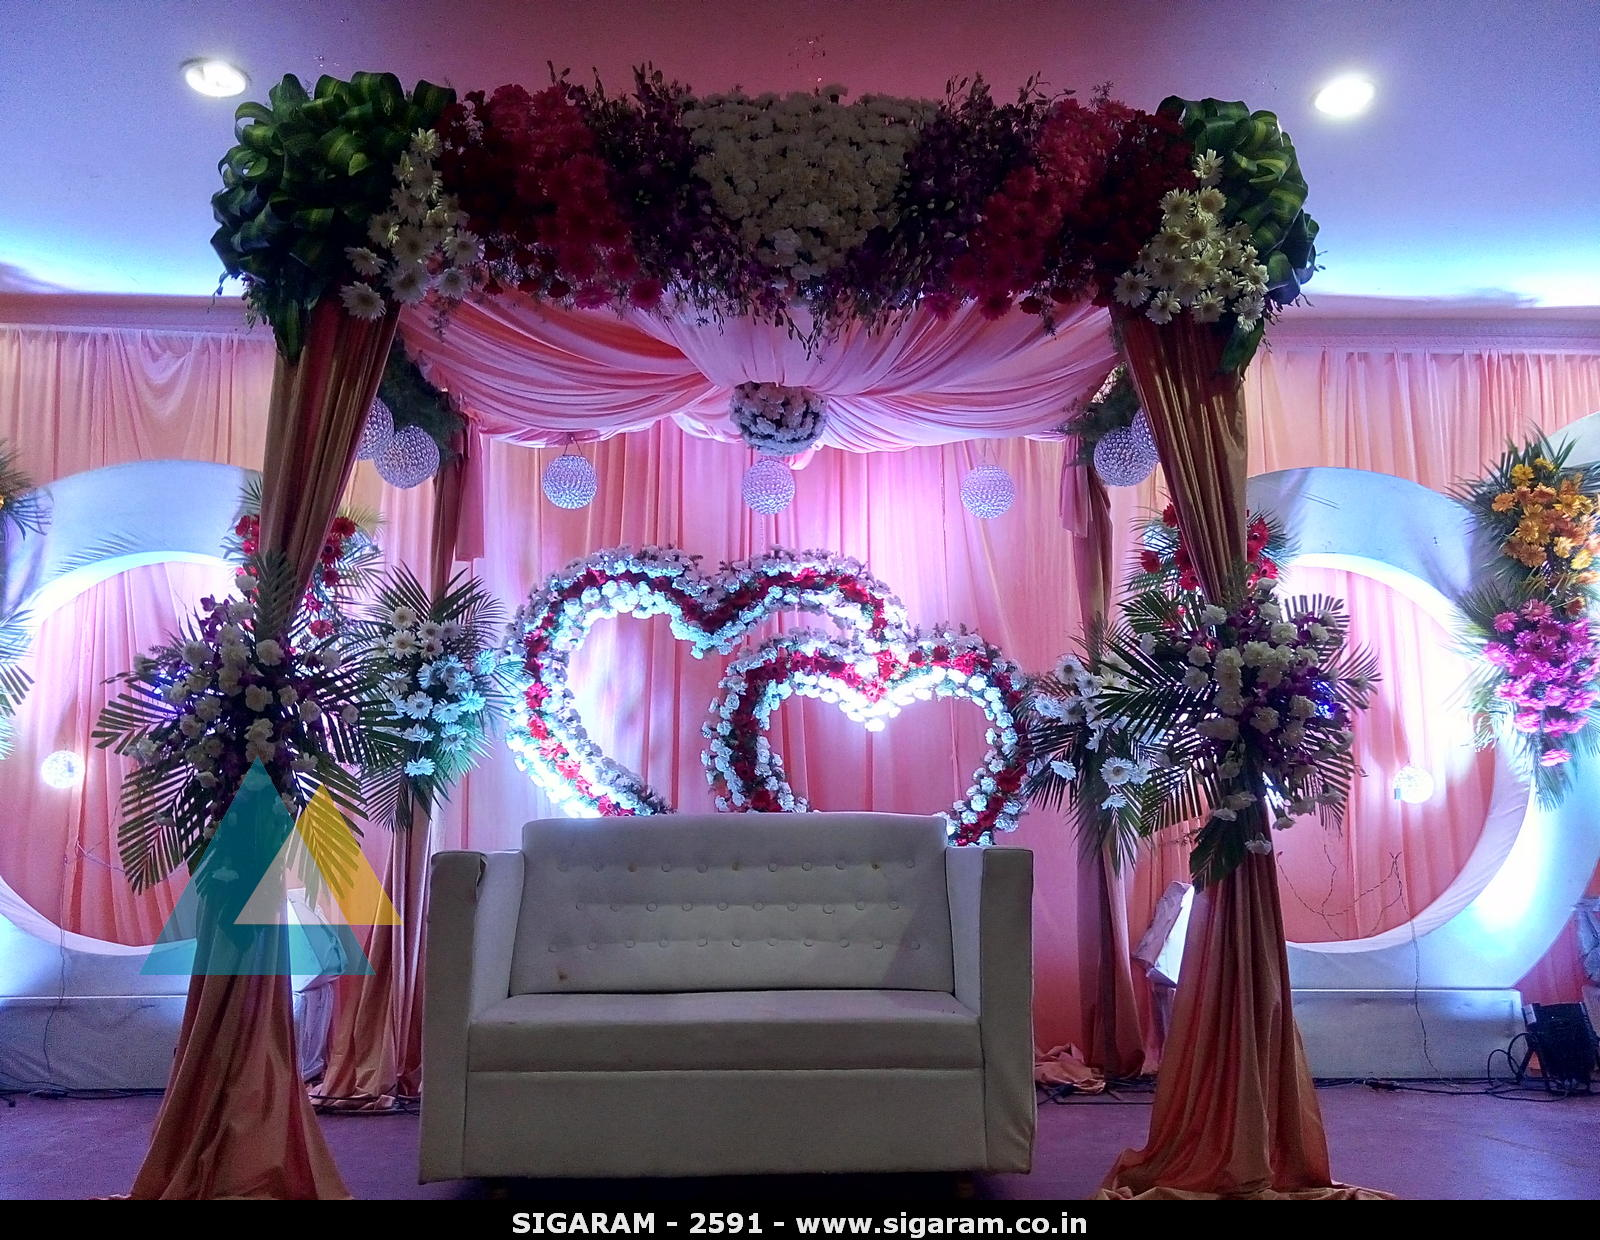 Wedding Reception Decoration At Subalakshmi Thirumana Mahal Cuddalore Wedding Decorators In